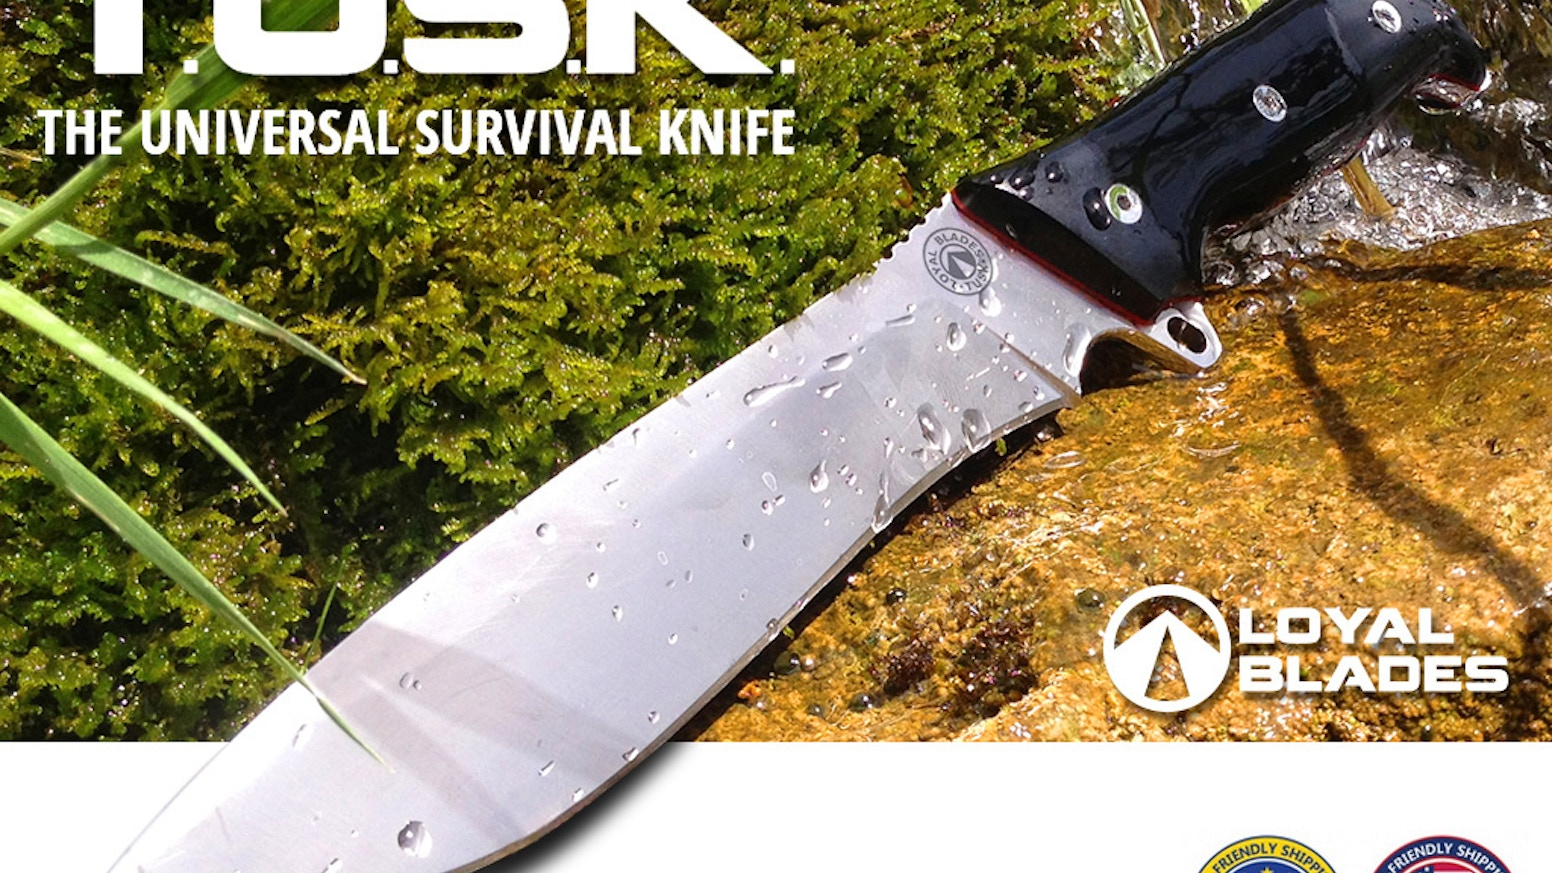 pleasant cool knives. An innovative survival knife  The versatile multi tool for outdoors adventure nature TUSK Universal Survival Knife by Loyal Blades